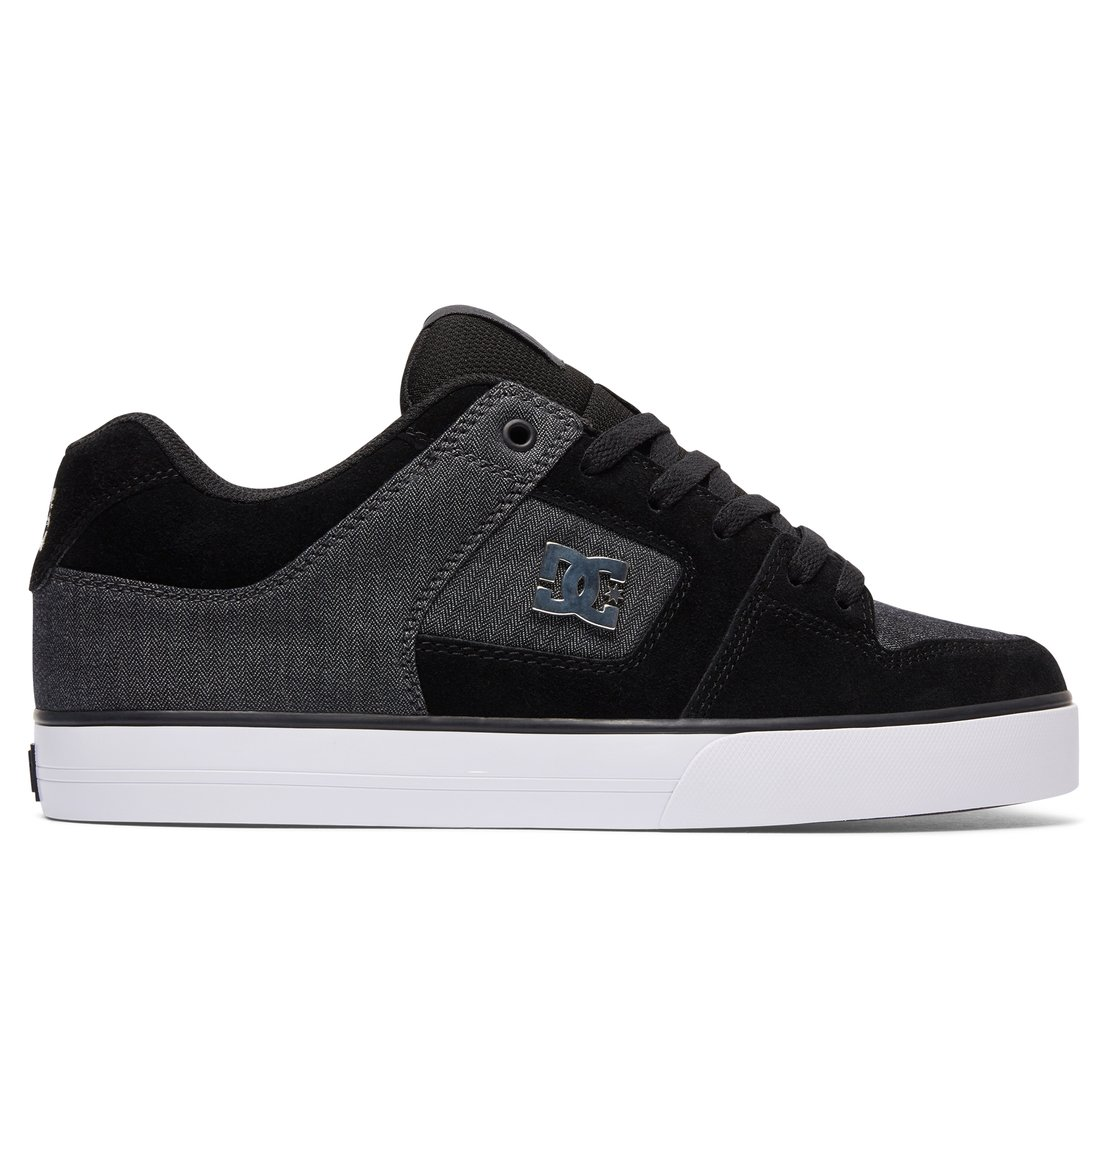 Pure SE - Baskets - Noir - DC Shoes